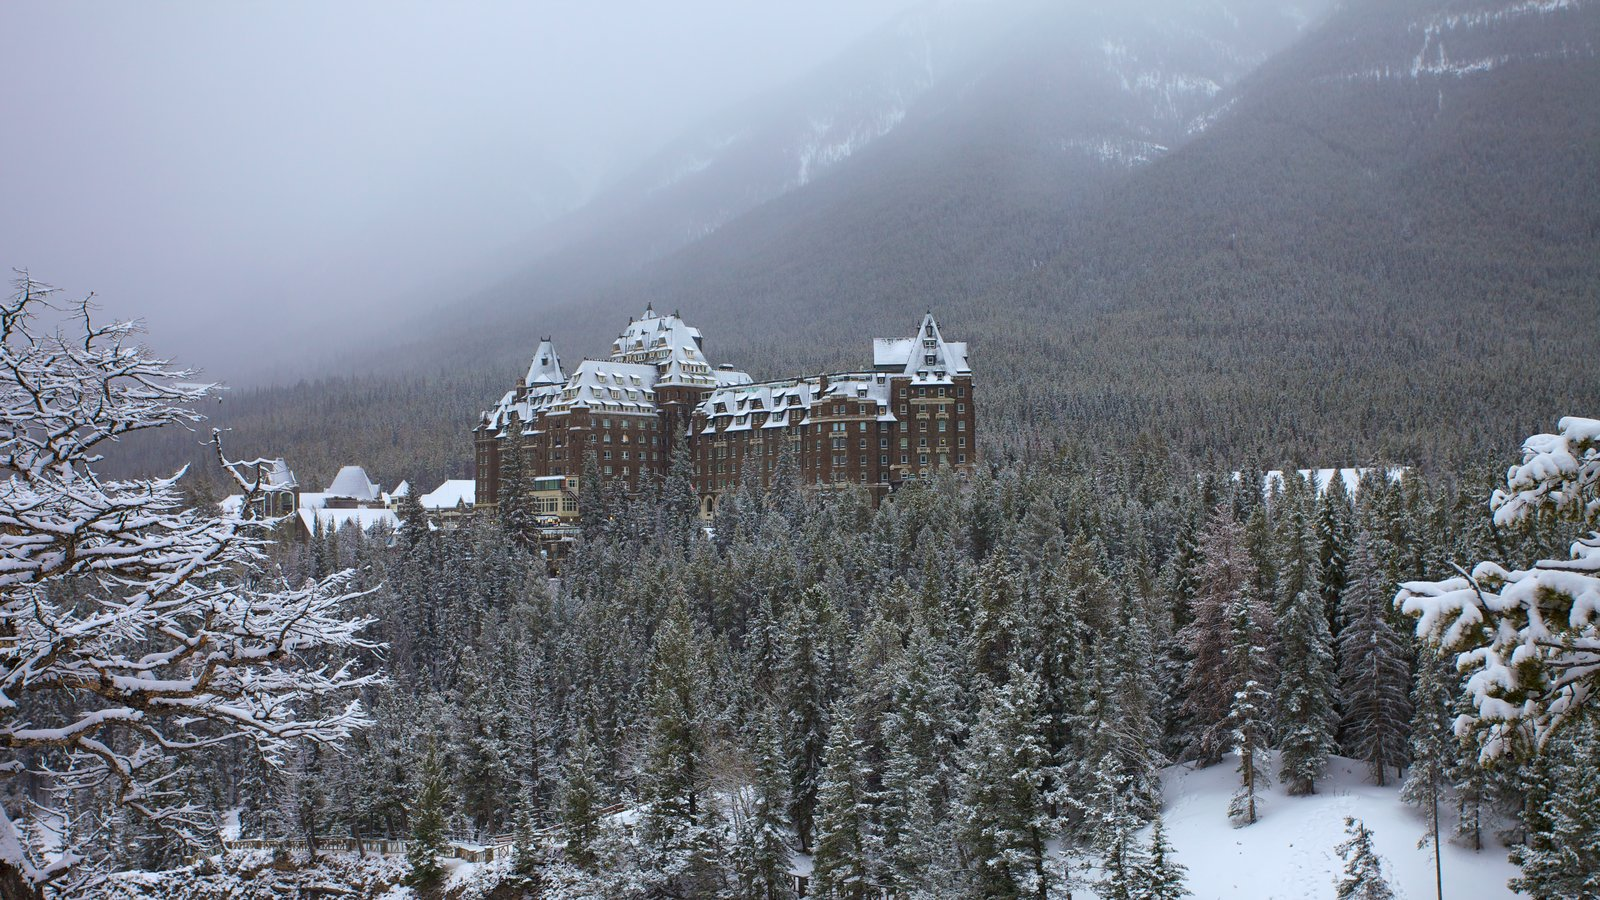 Banff National Park which includes landscape views, snow and mist or fog